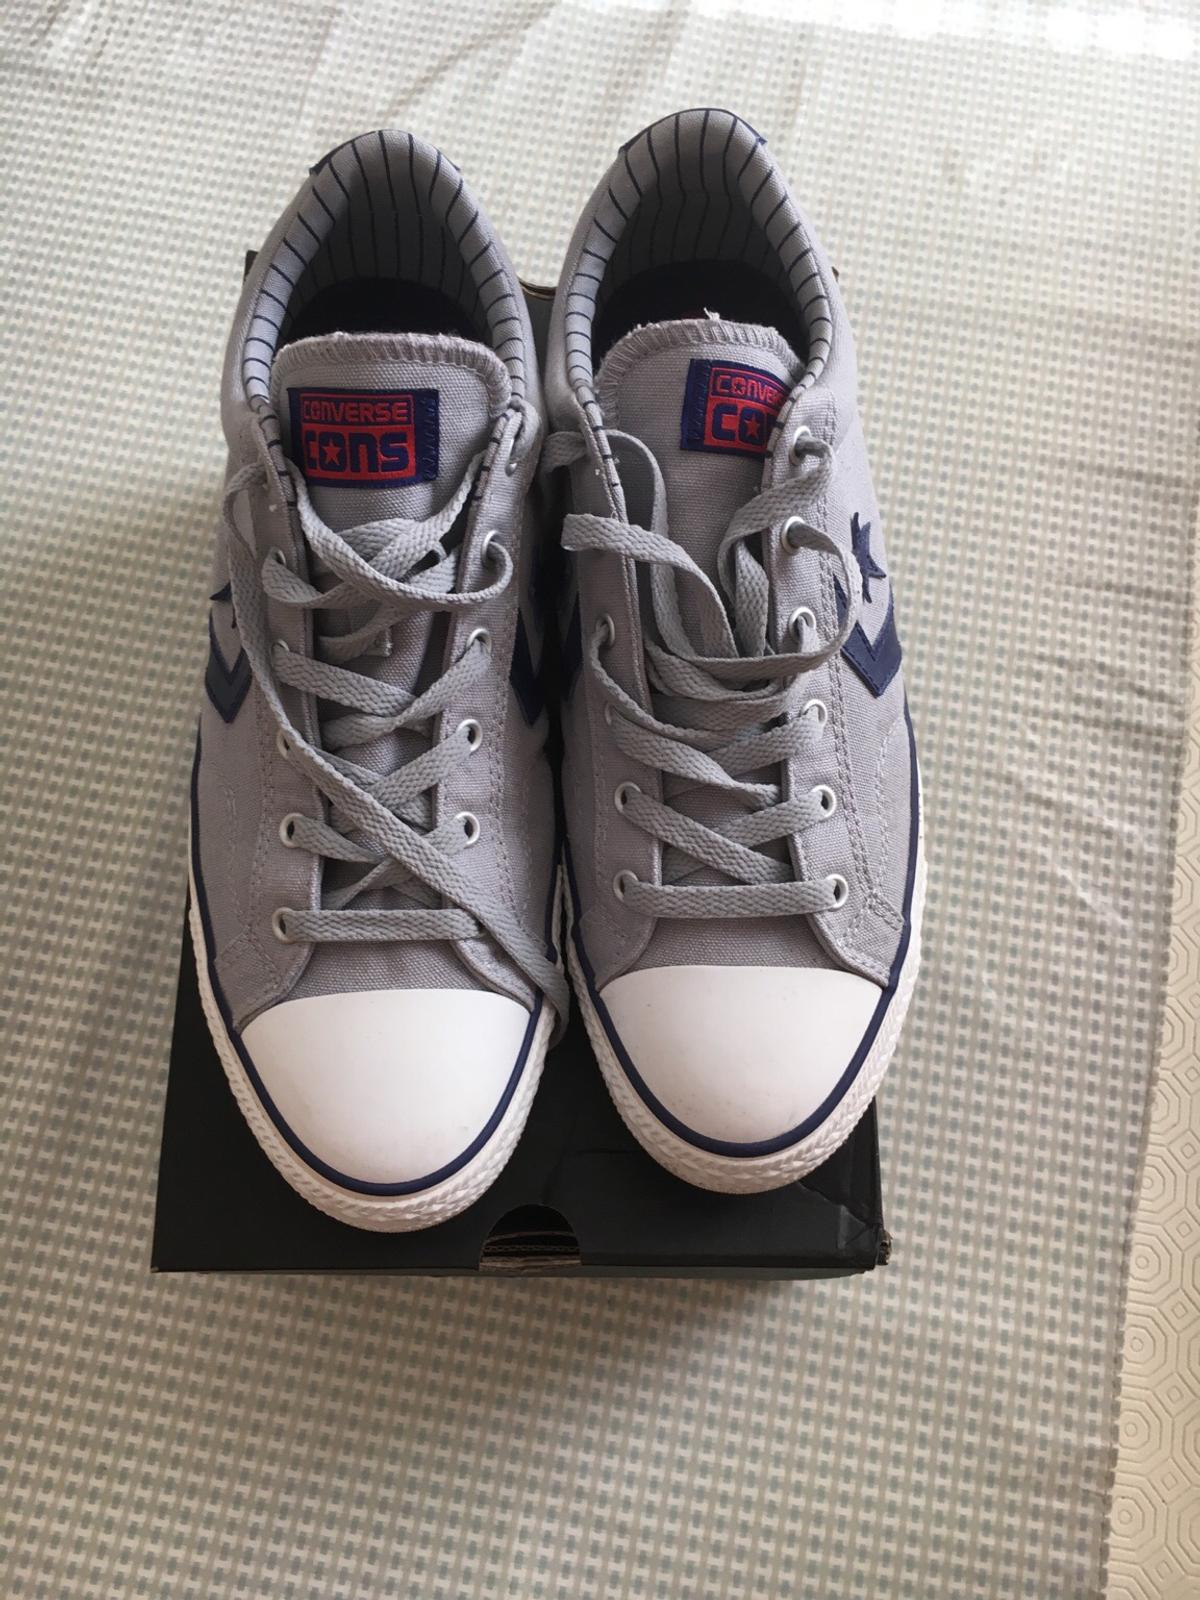 d5ee6502a33e Converse All-Star Shoes in CH44 Wallasey for £10.00 for sale - Shpock